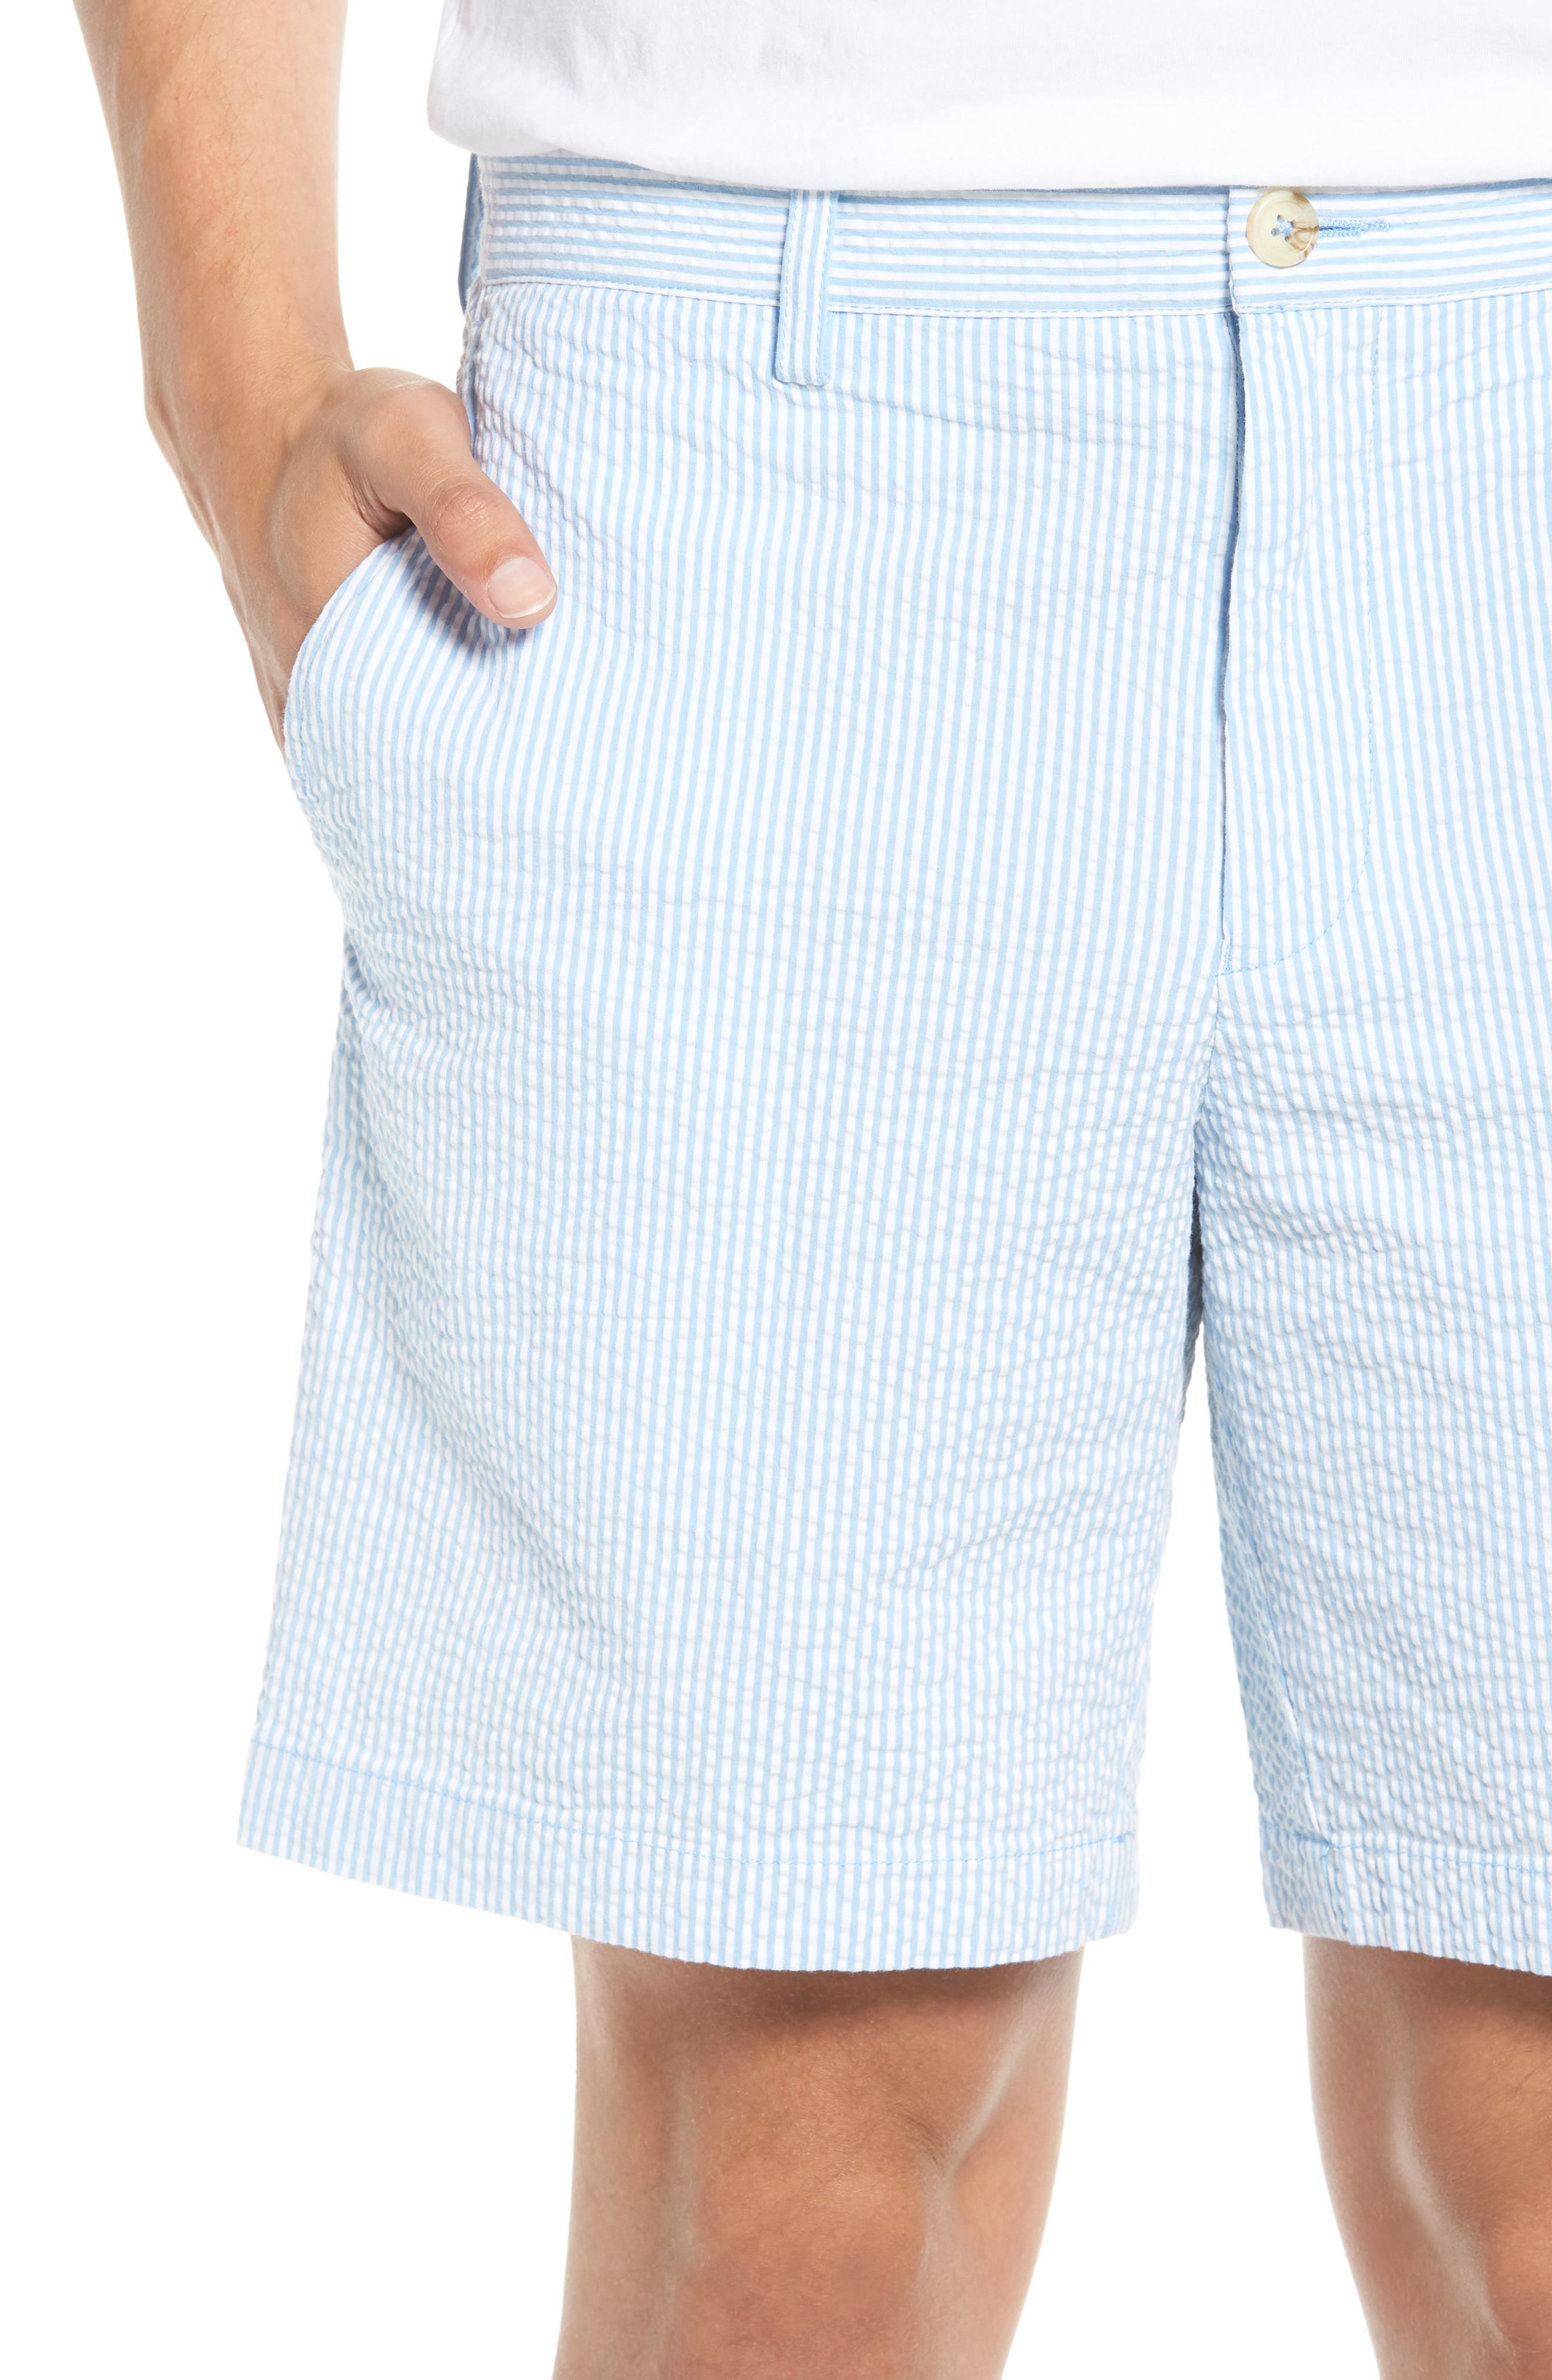 Stripe Seersucker Shorts,                             Alternate thumbnail 4, color,                             392